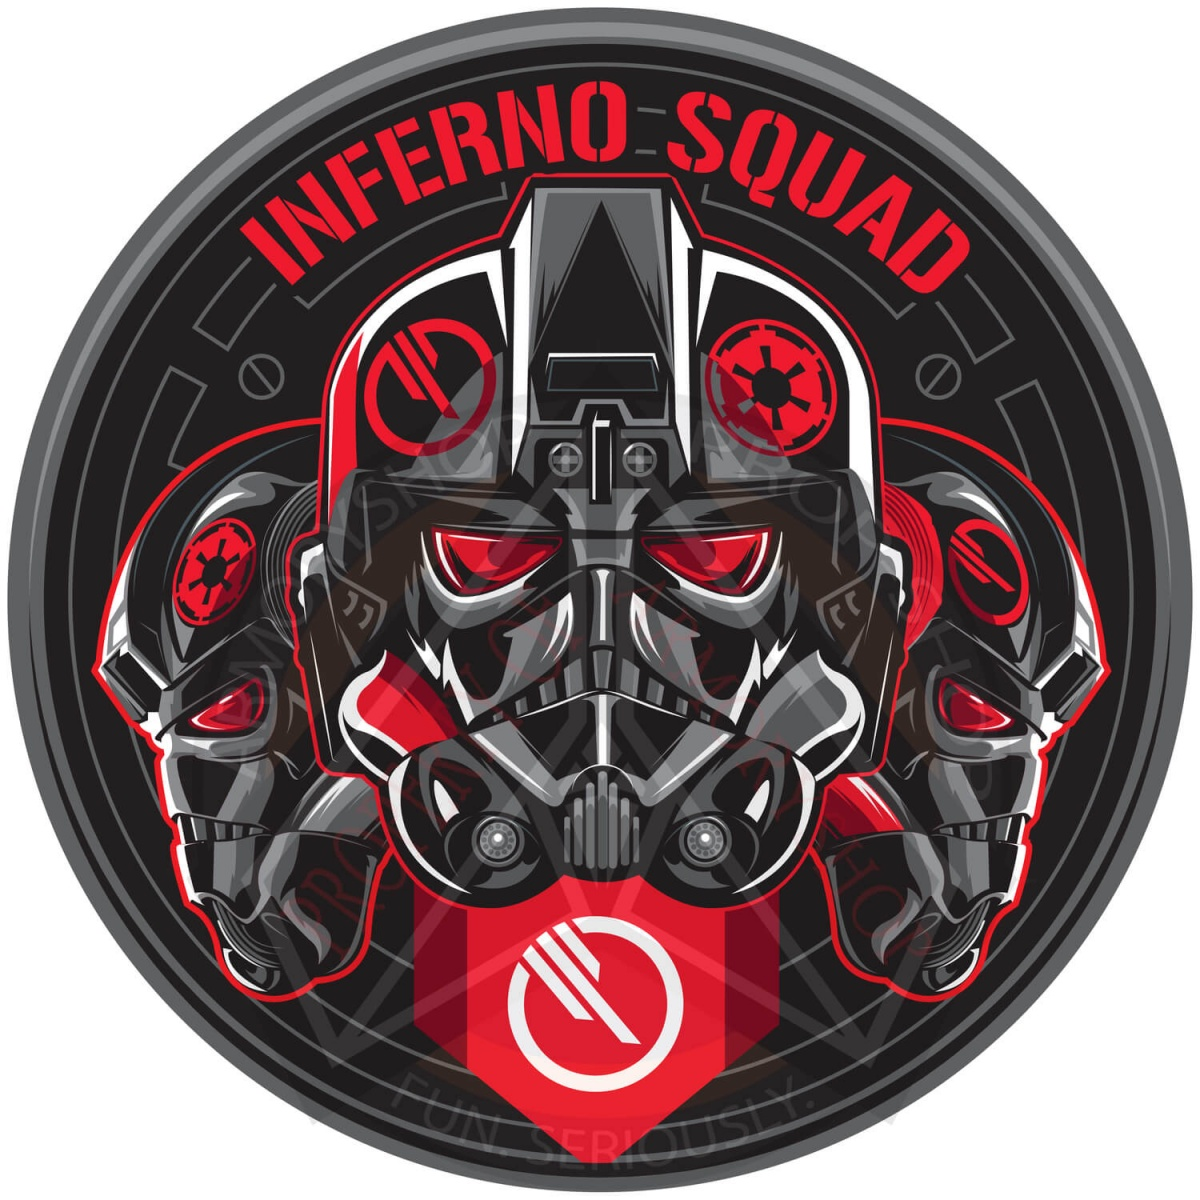 Inferno Squad Patch